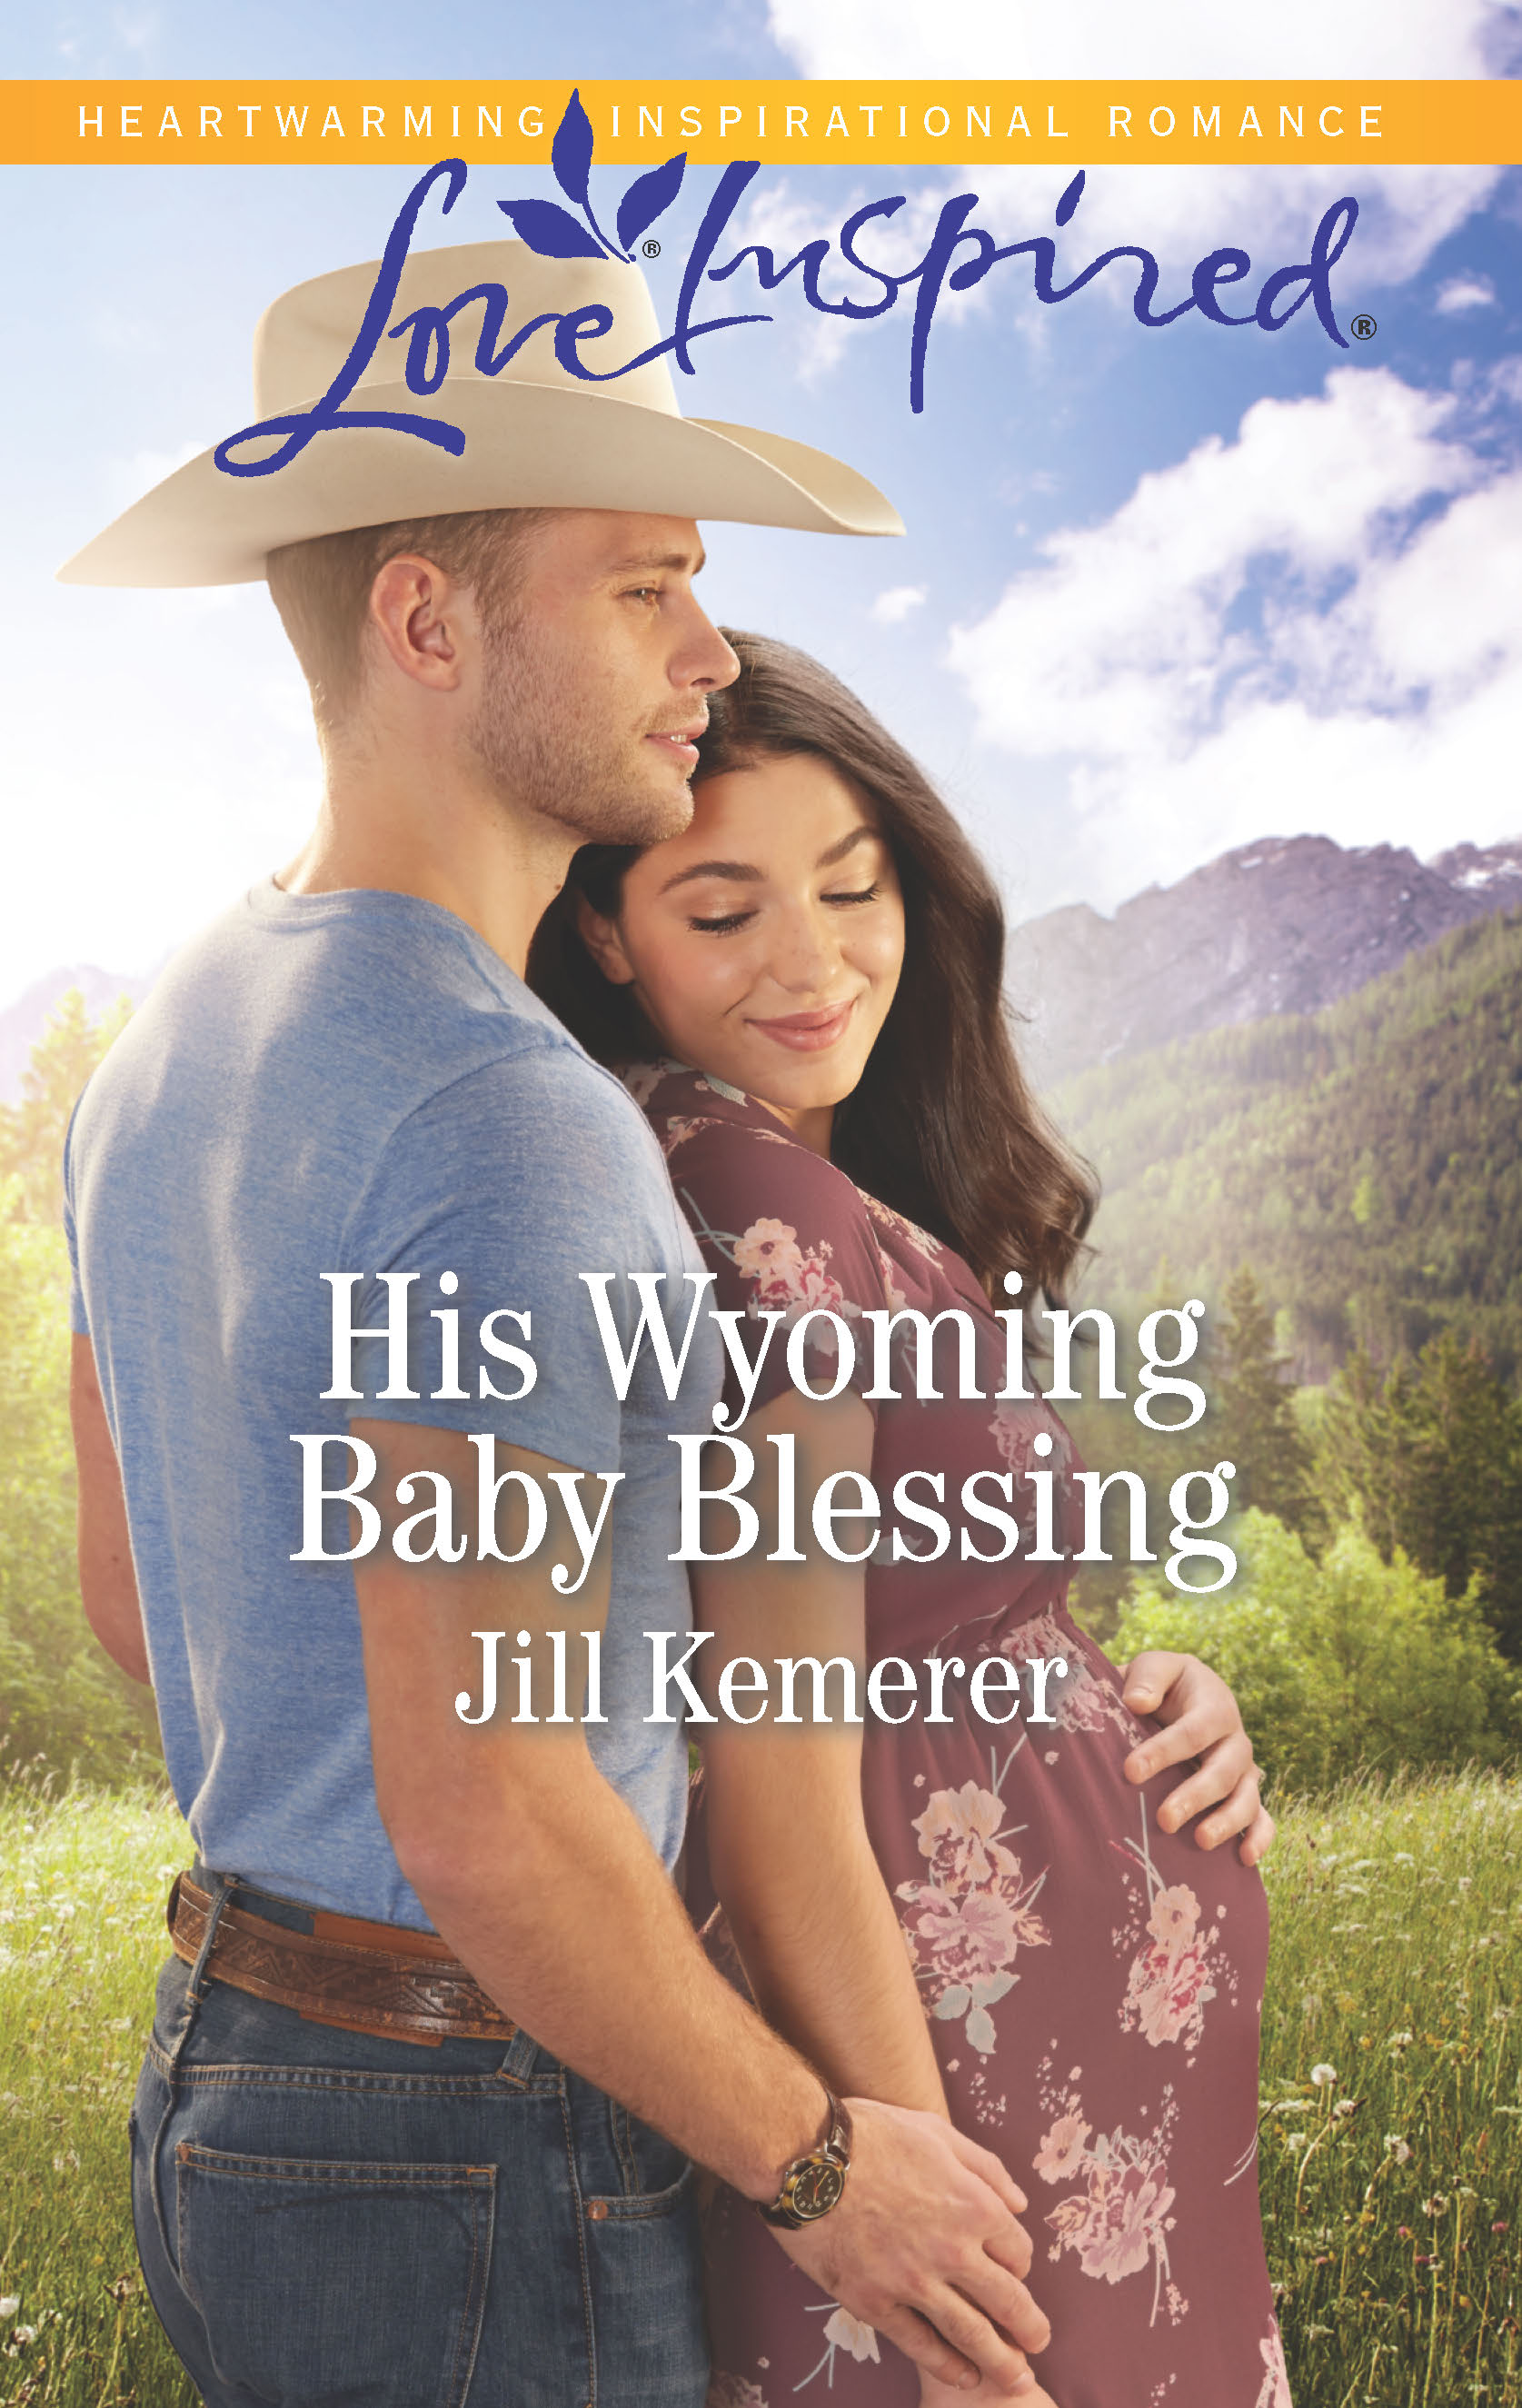 His Wyoming Baby Blessing - She's pregnant on his doorstep…Saddle up for this Wyoming Cowboys novel